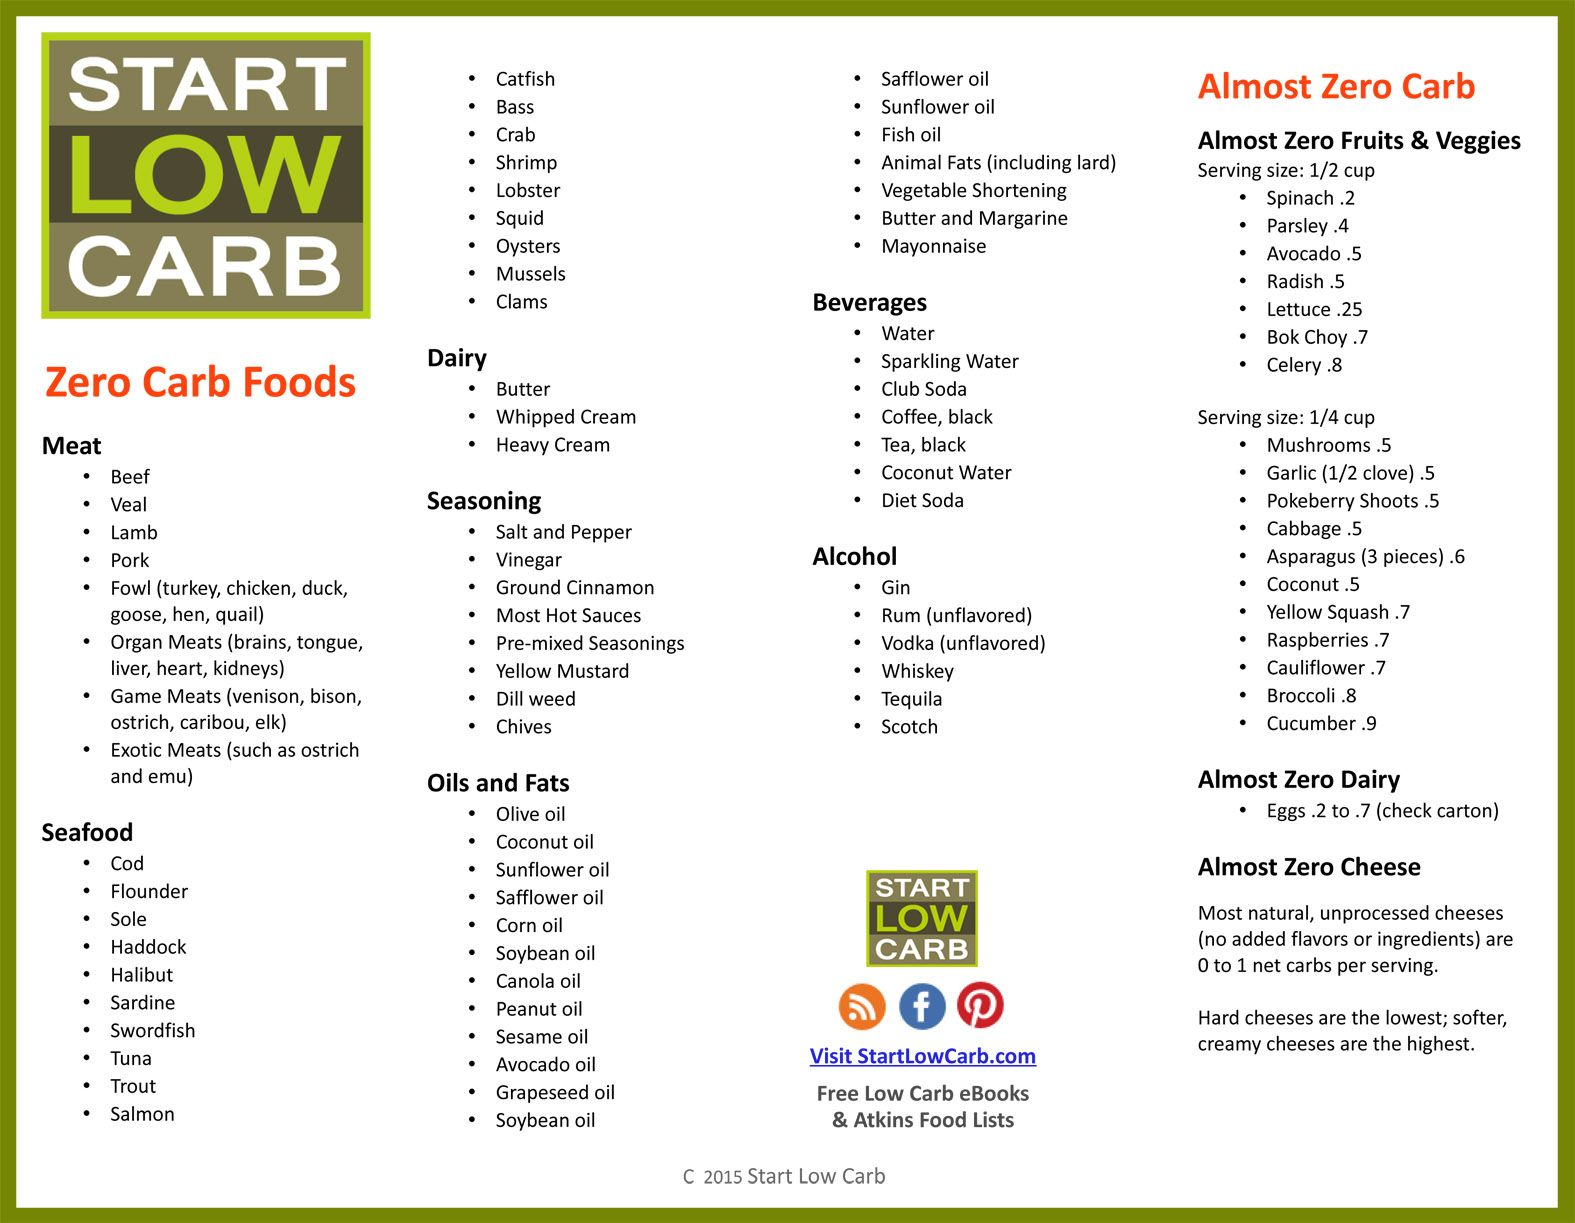 70 Zero Carb Foods List for Atkins Induction or Ketosis